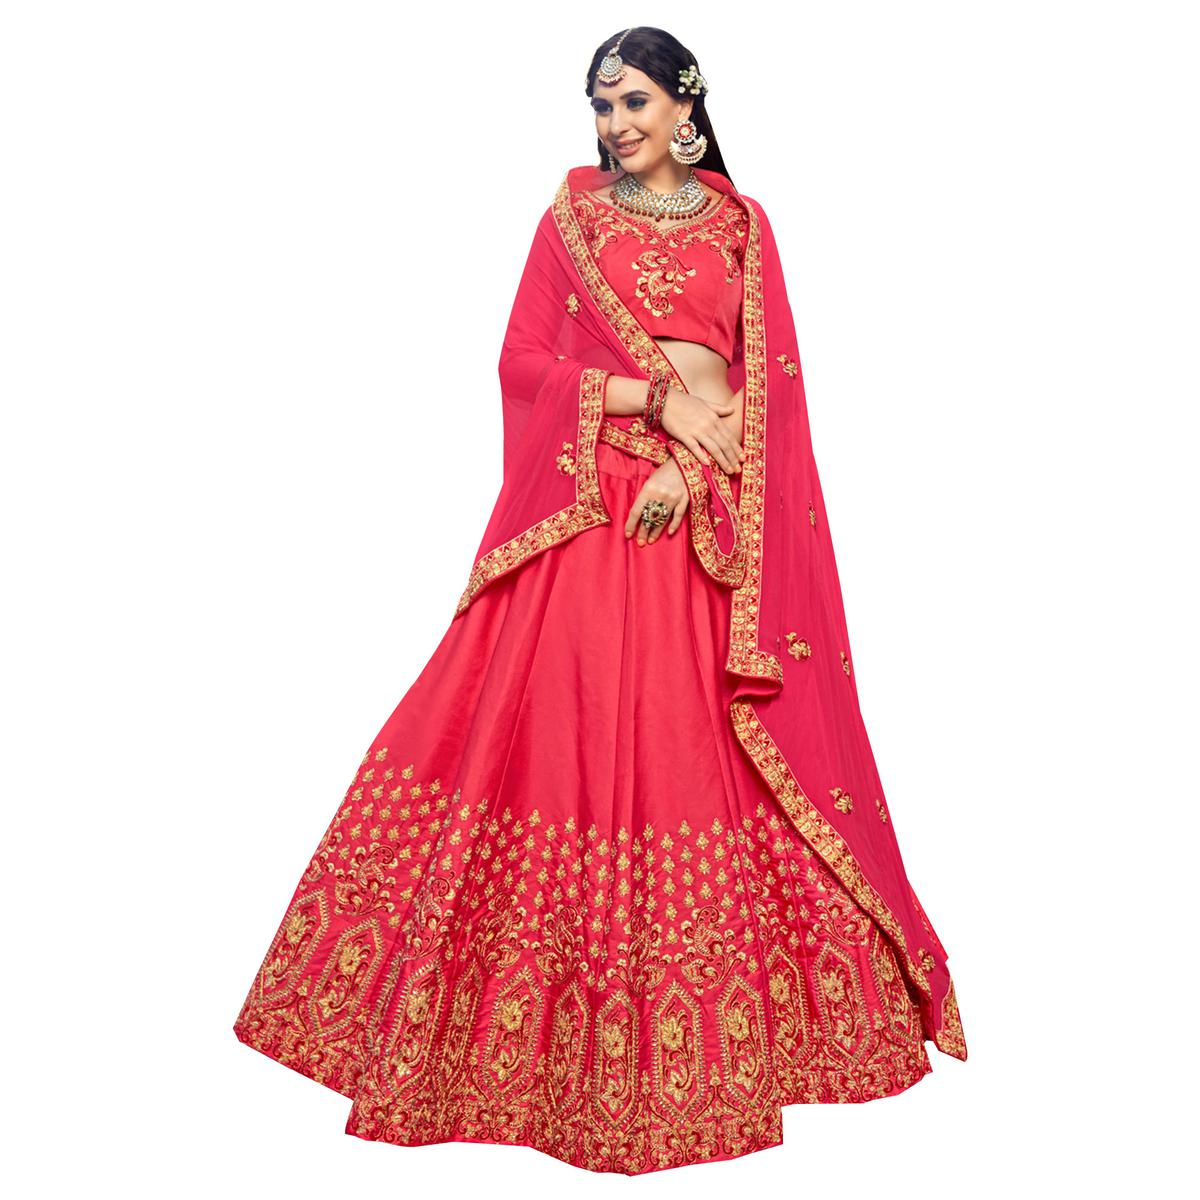 9cc6507497 Buy Charming Pink Colored Partywear Embroidered Heavy Silk Lehenga Choli  for womens online India, Best Prices, Reviews - Peachmode